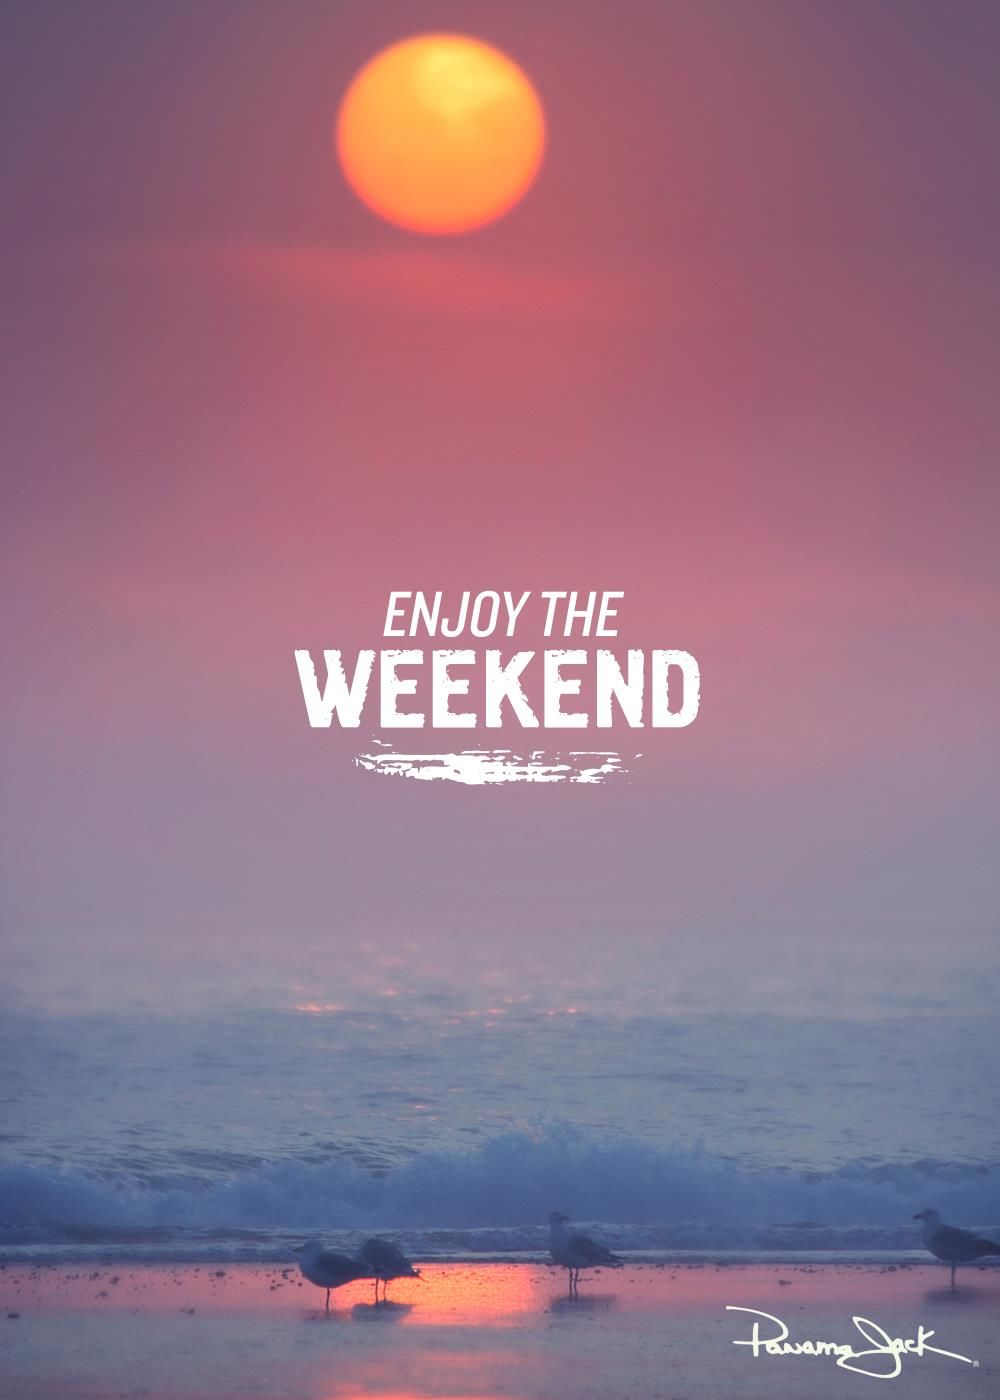 http://www.lovethispic.com/uploaded_images/163527-Enkoy-The-Weekend.jpg